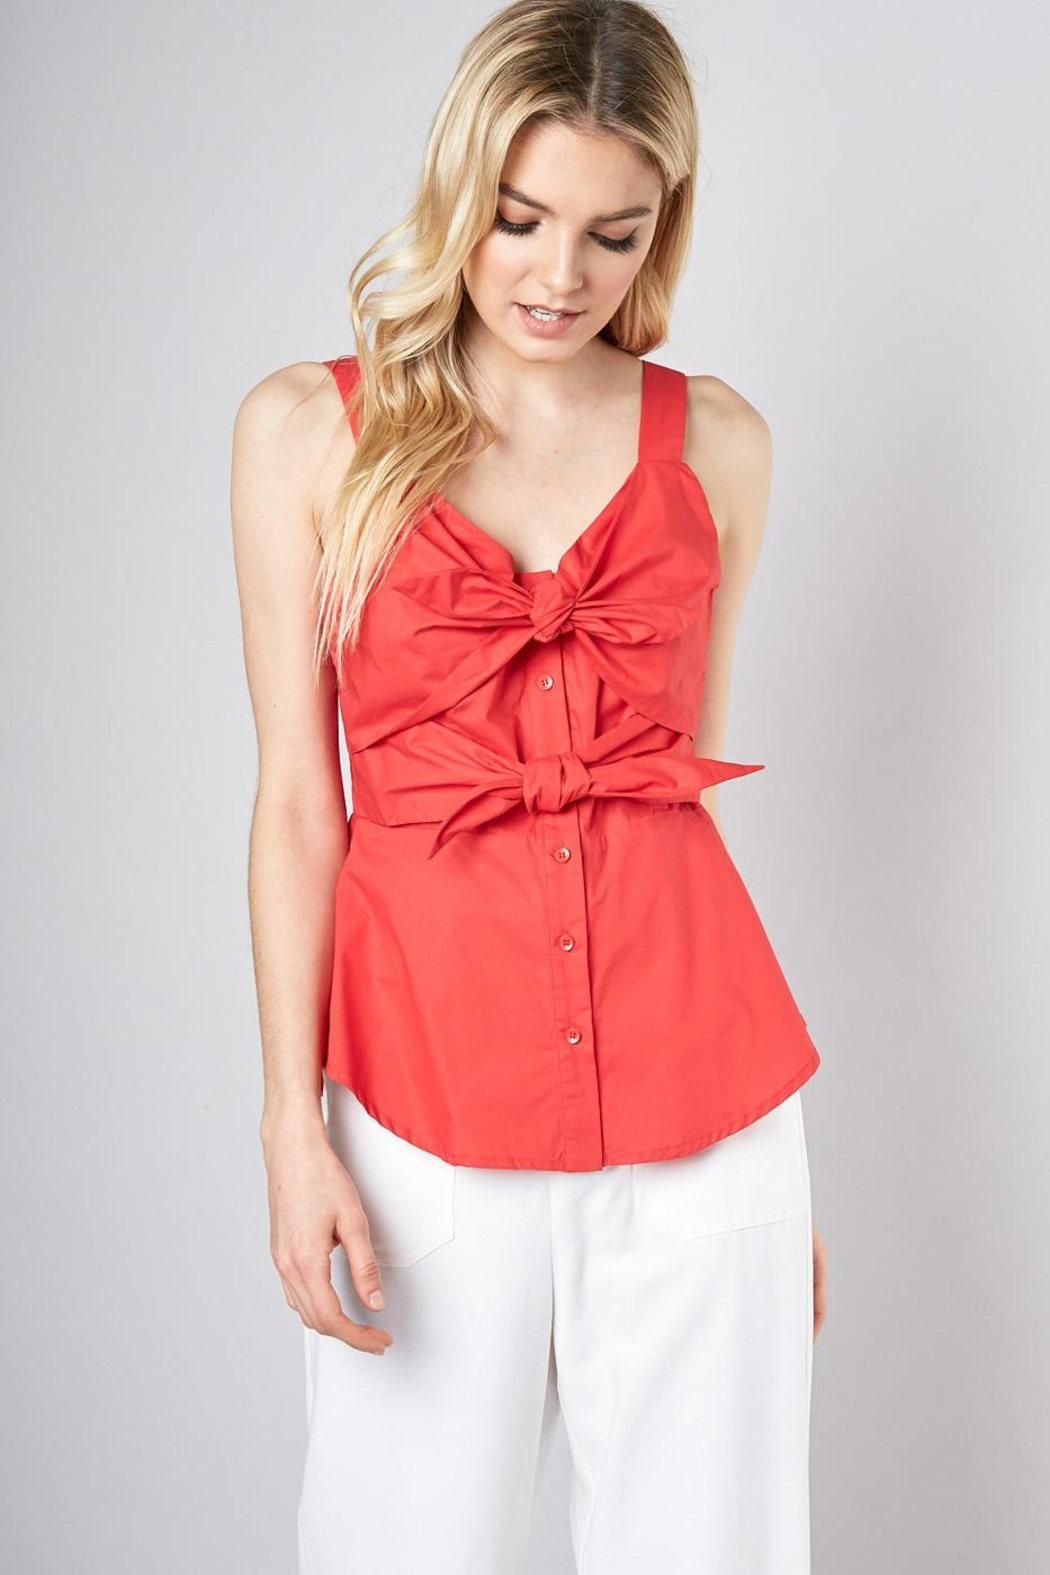 Do & Be Double Tie Blouse - Main Image